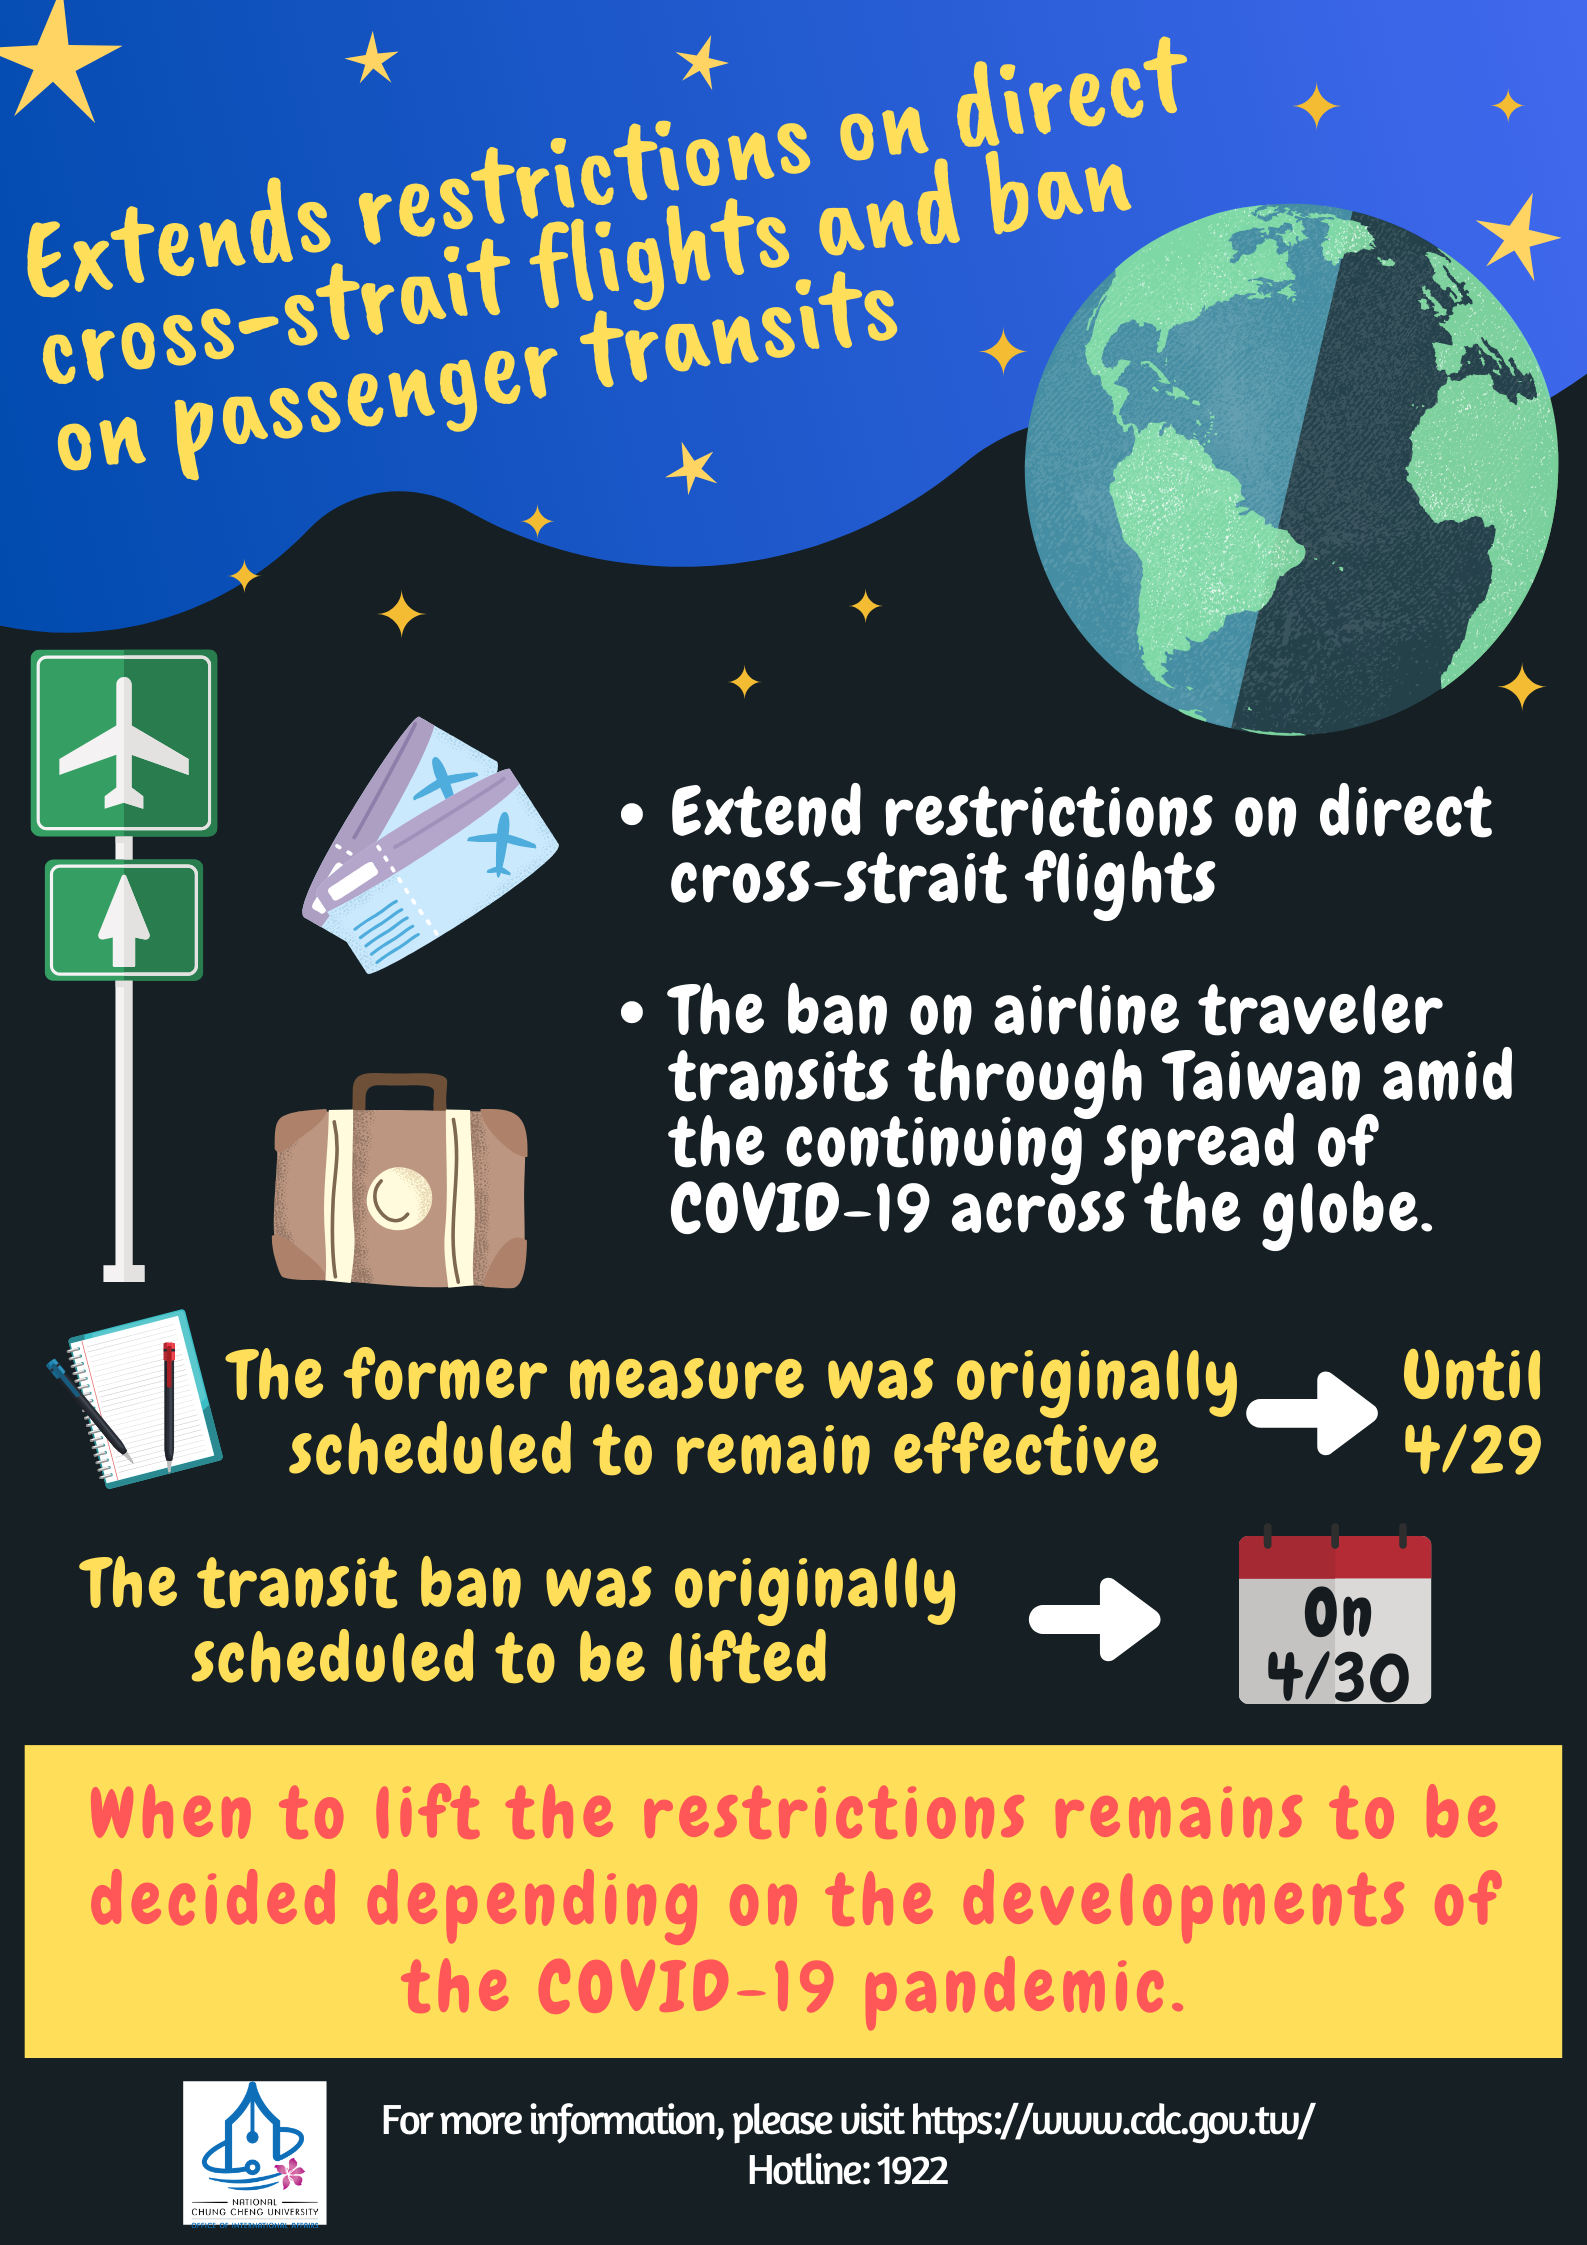 extends_restrictions_on_direct_cross-strait_flights_and_ban_on_passenger_transits